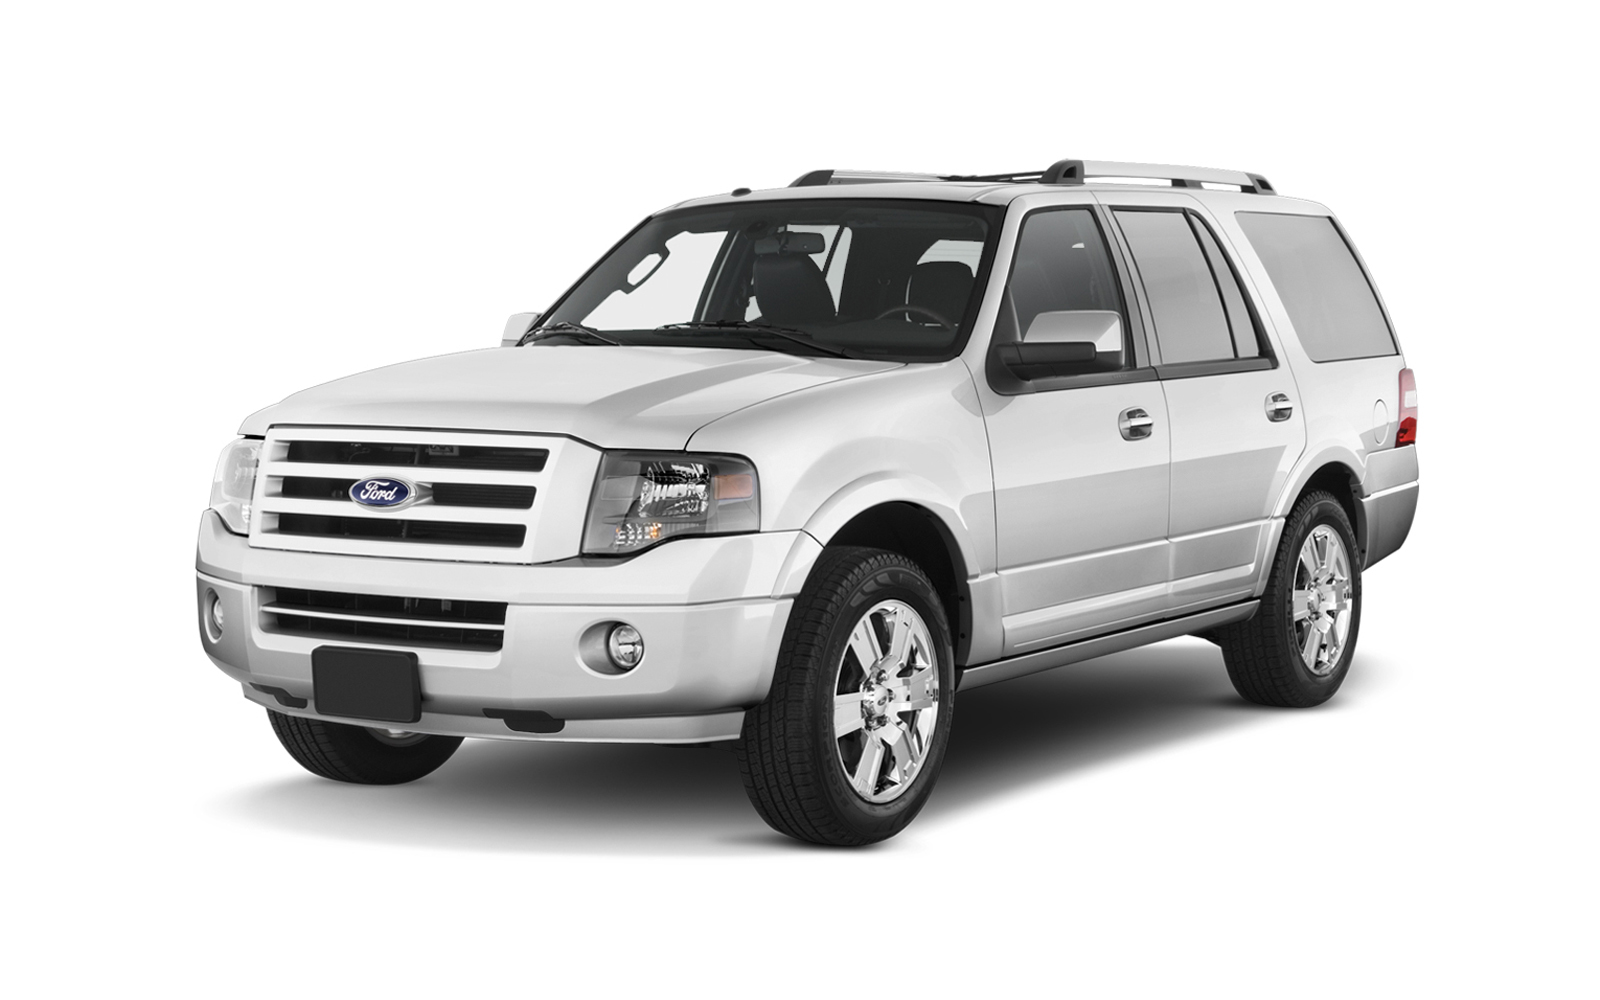 Ford Expedition suv car 26